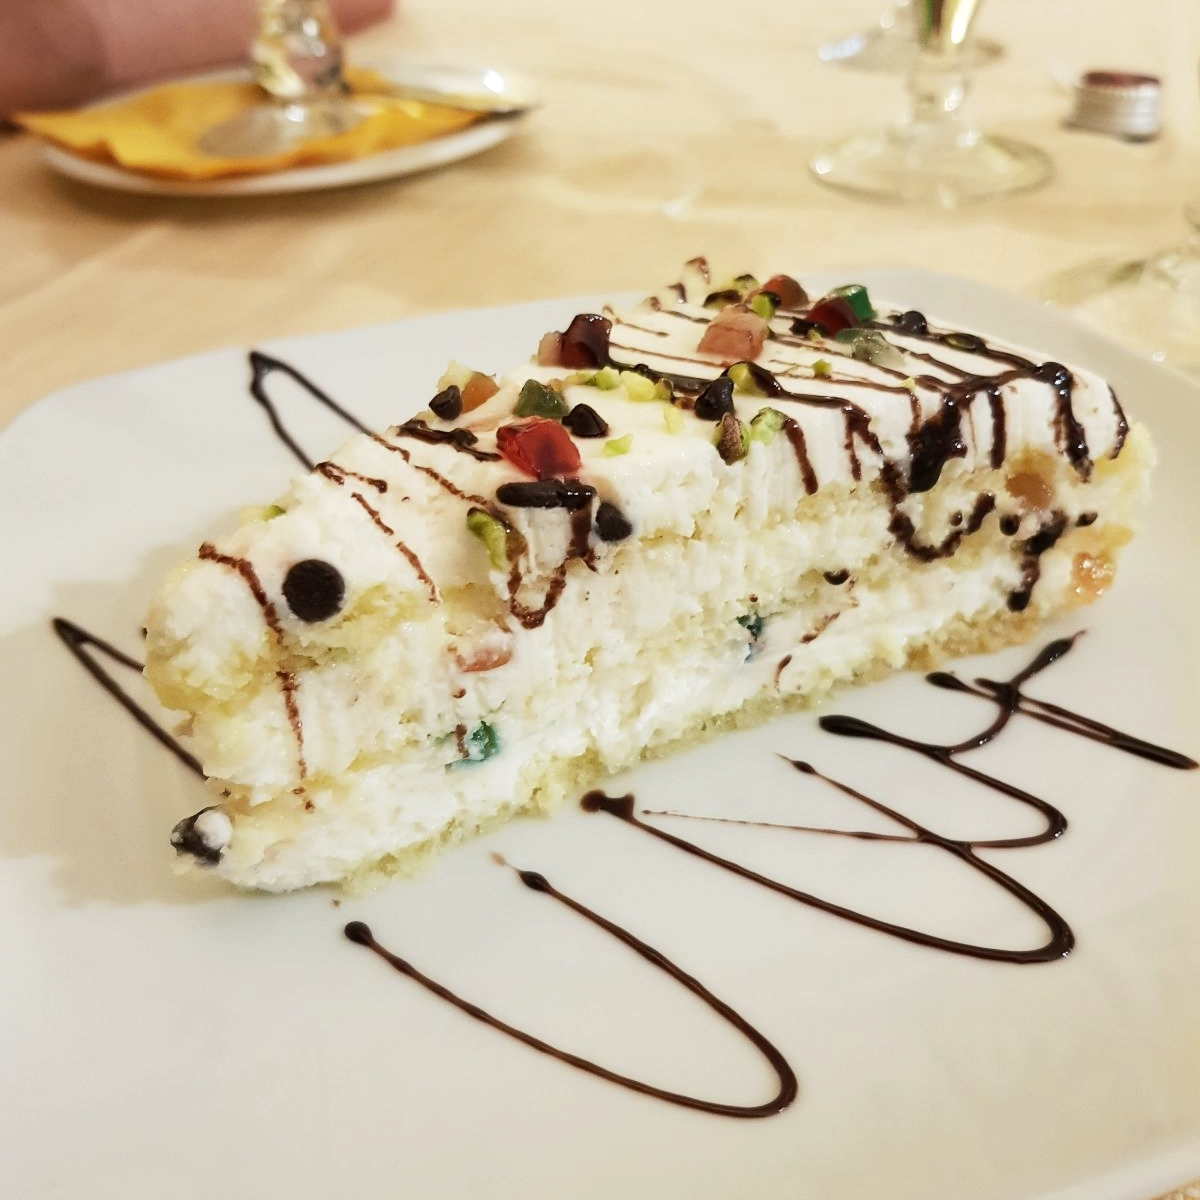 The ricotta ravioli proving to be incredibly non-photogenic, here is a photo of the lovely cassata we had for dessert